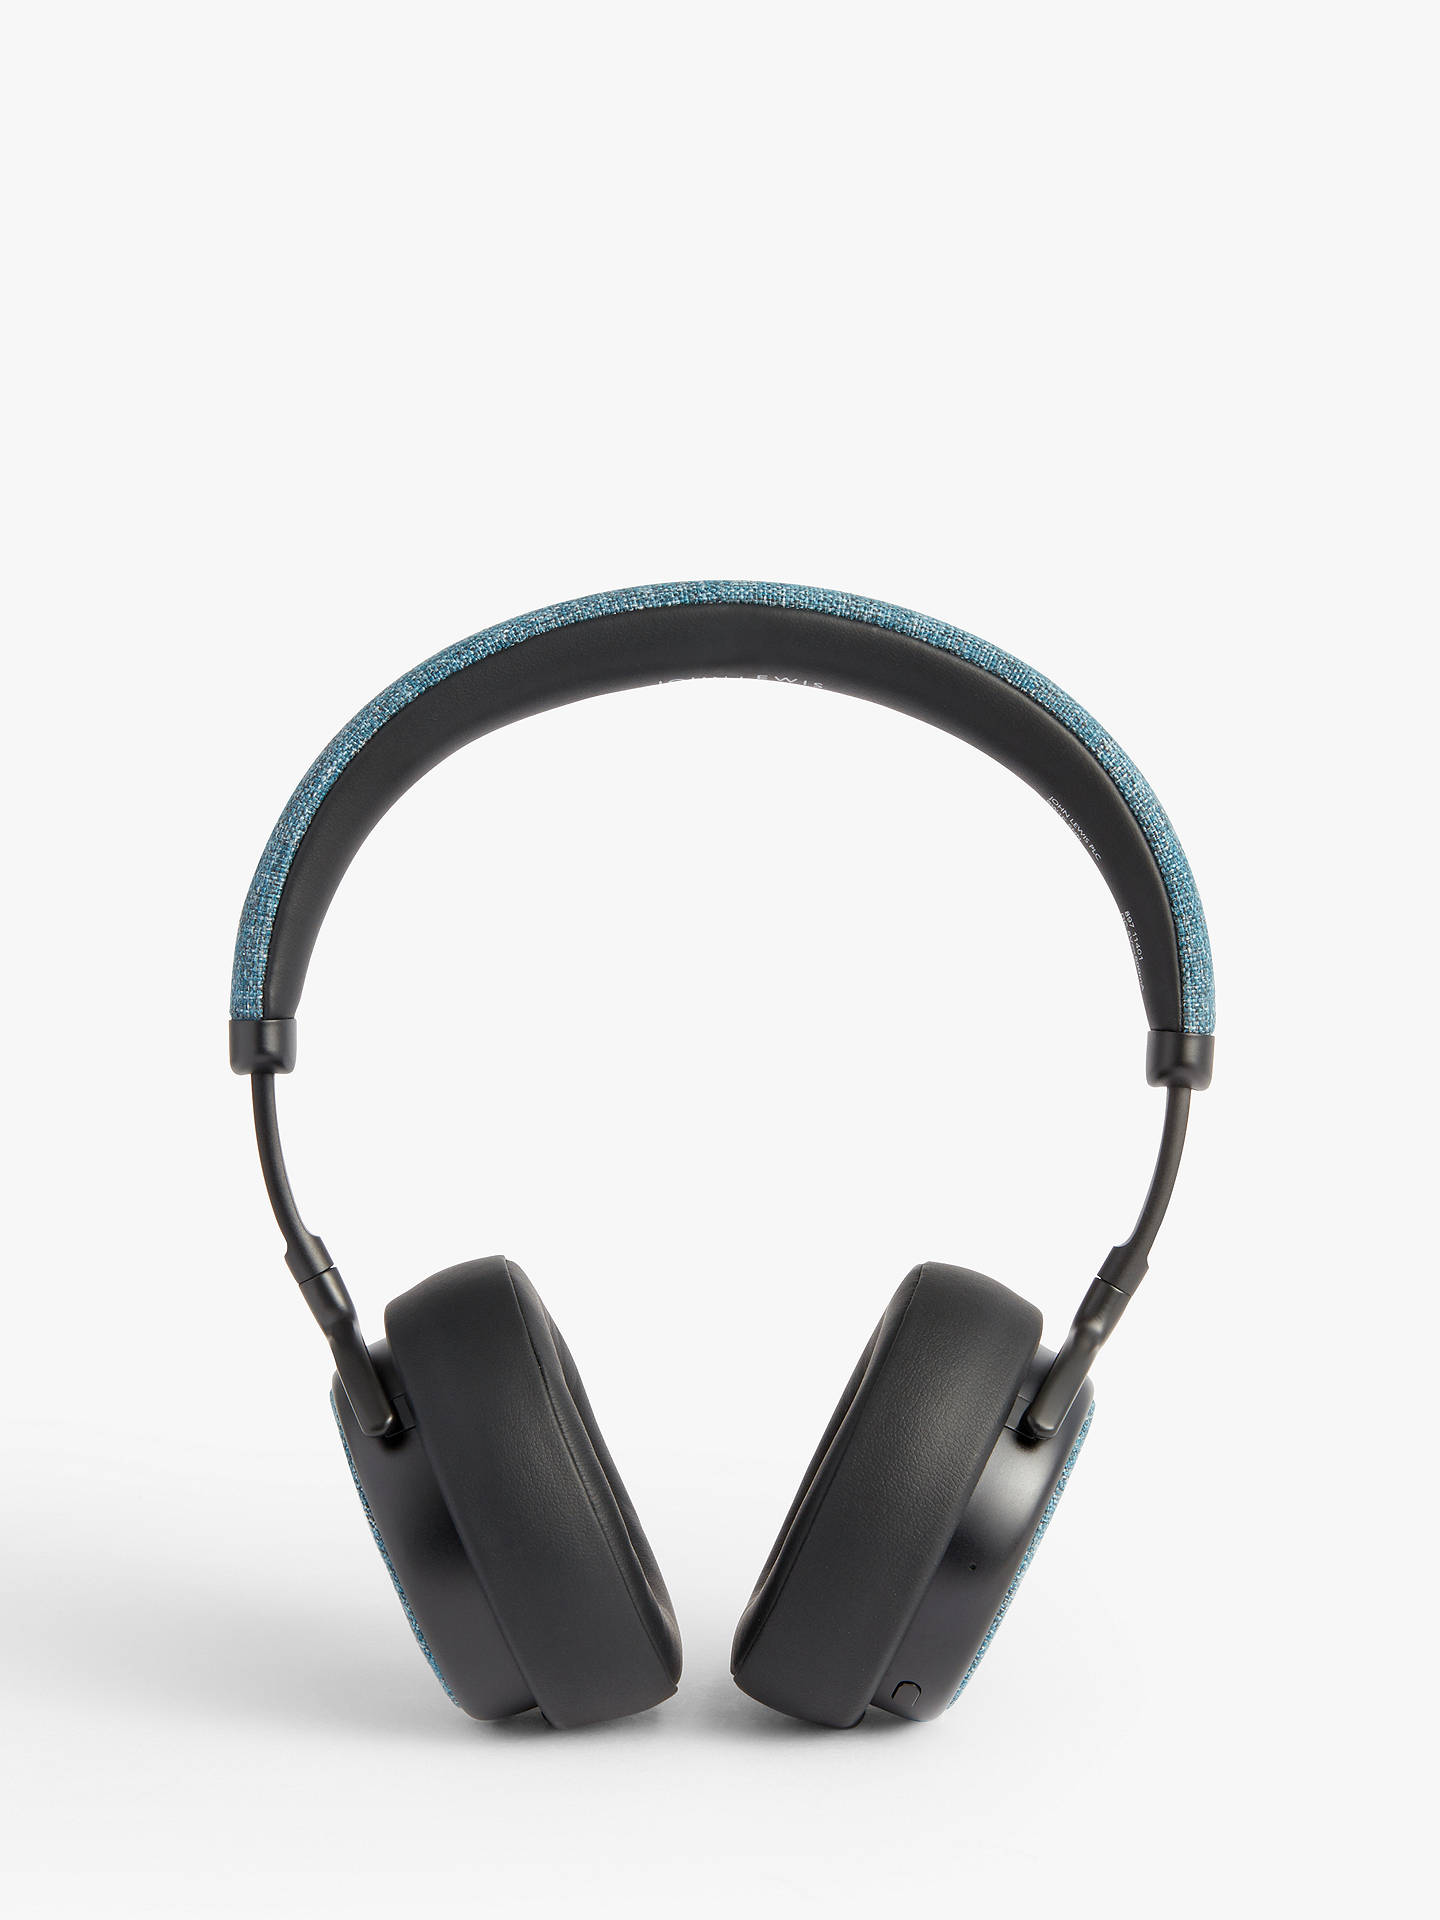 Buy John Lewis & Partners H1 Wireless On-Ear Headphones with Mic/Remote, Blue/Grey Online at johnlewis.com